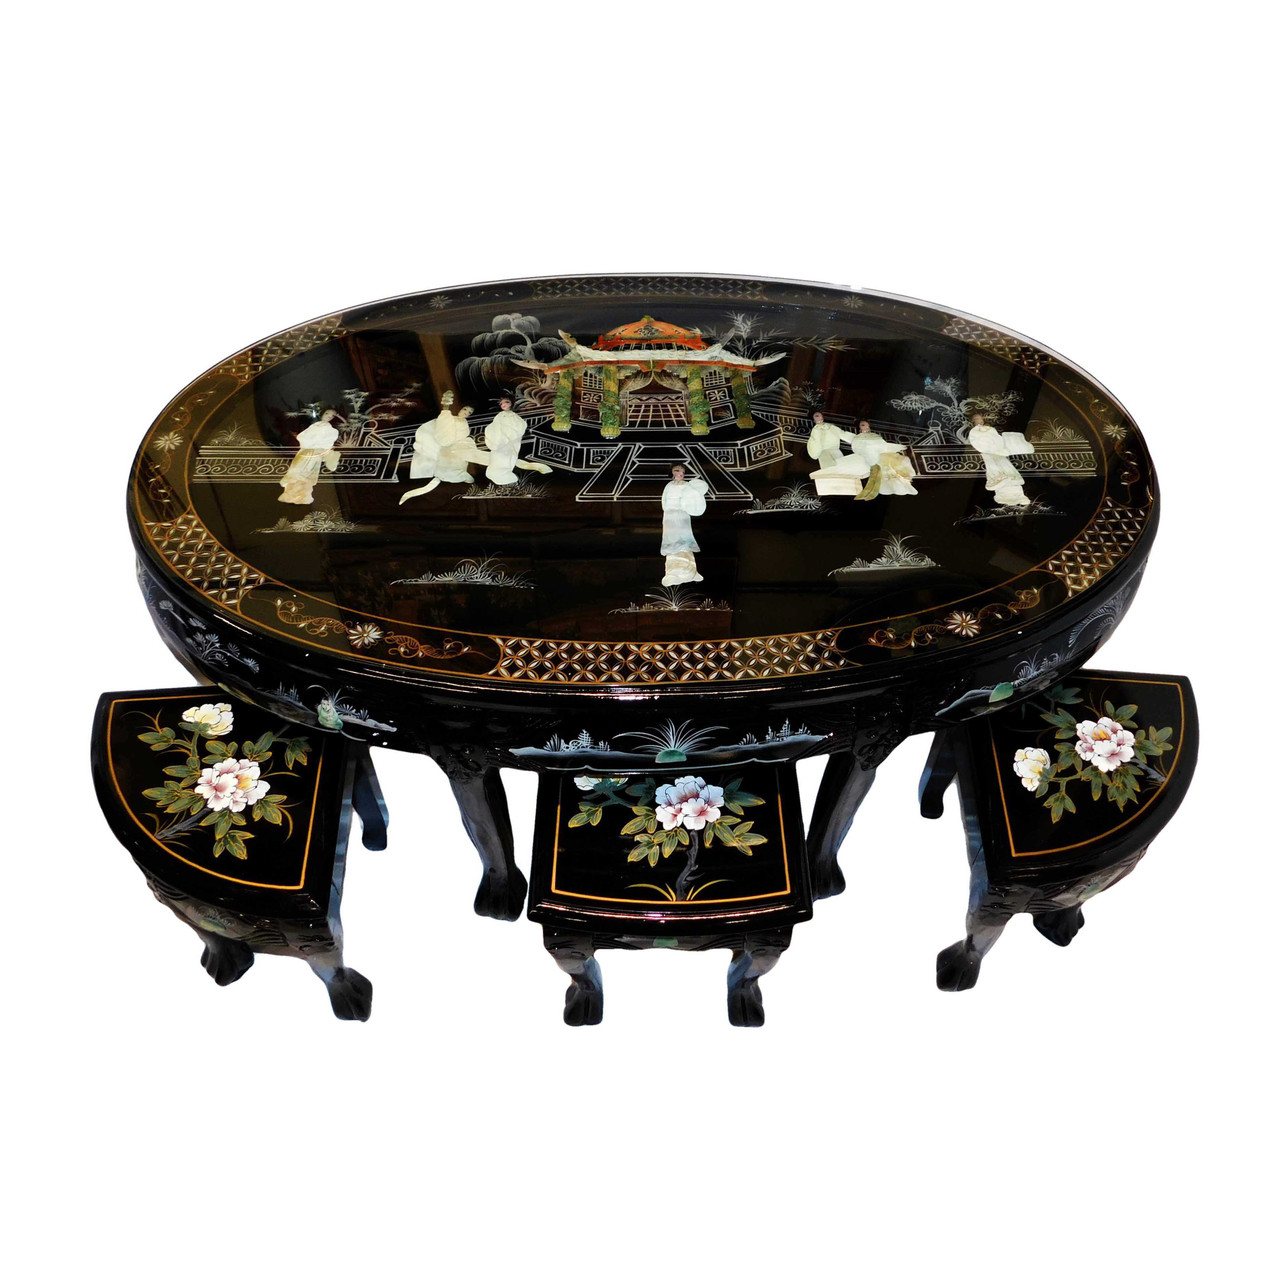 - Oriental Coffee Table In Black Lacquer With Inlaid Mother Of Pearl